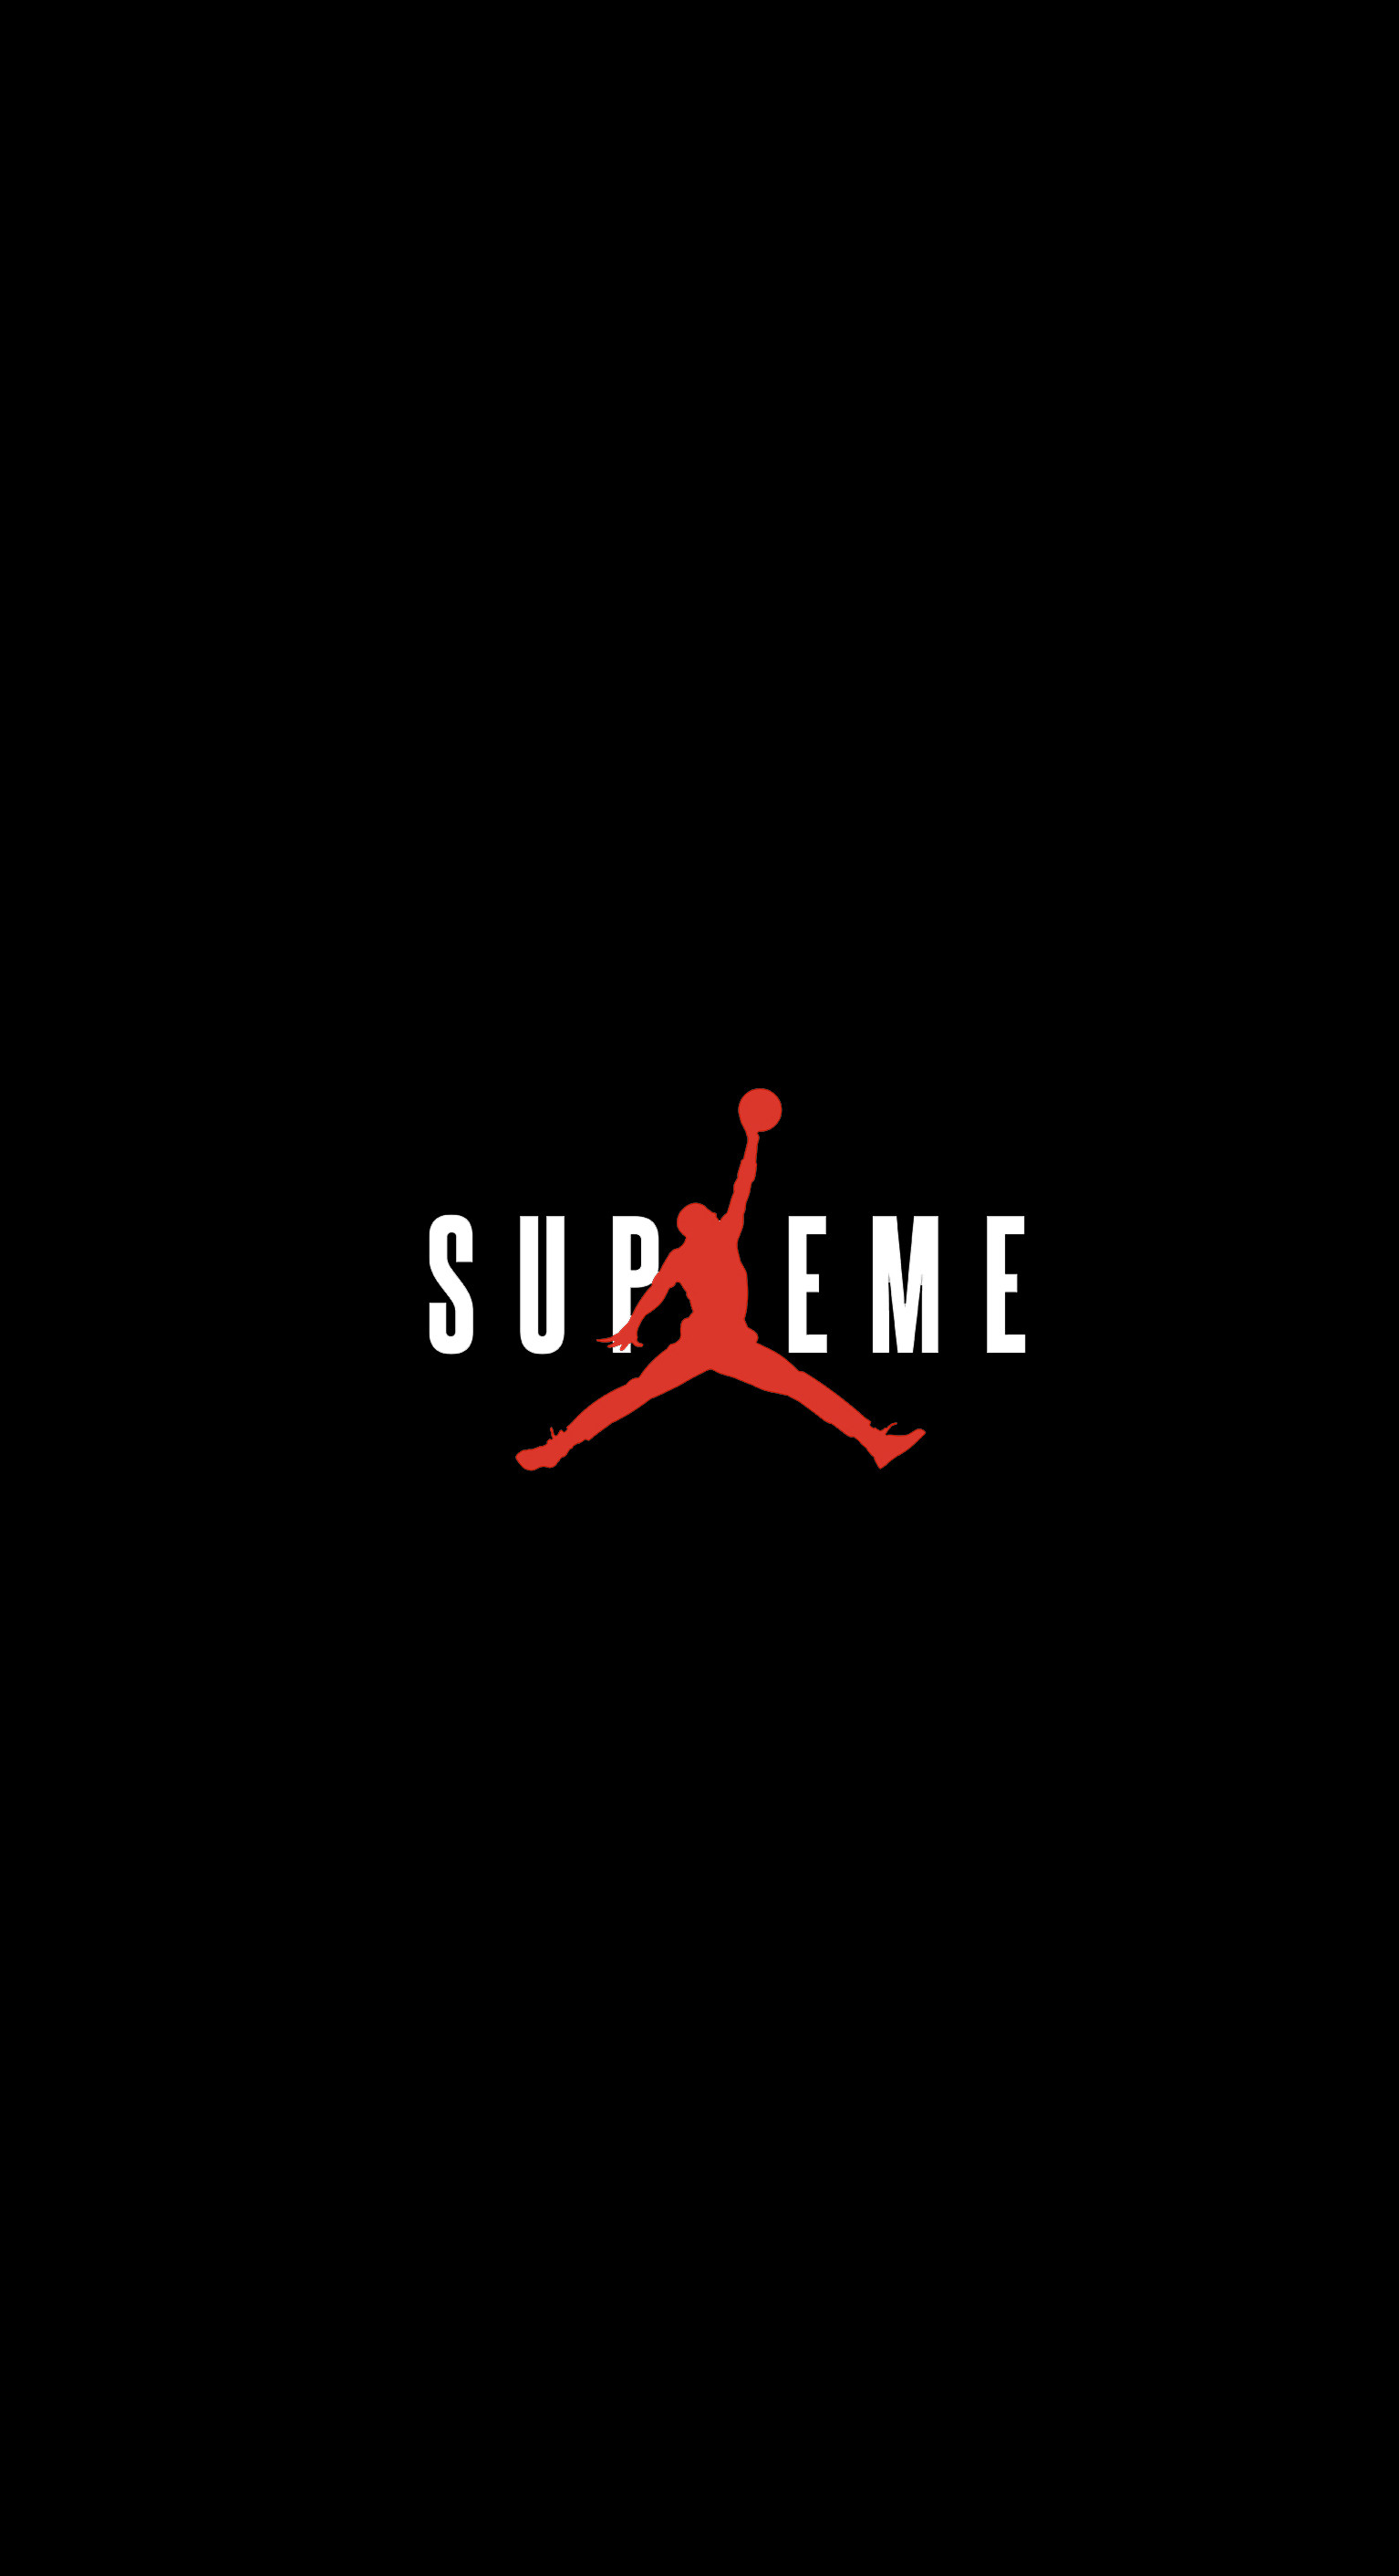 download Supreme Wallpaper 73 images [1534x2824] for your 1534x2824